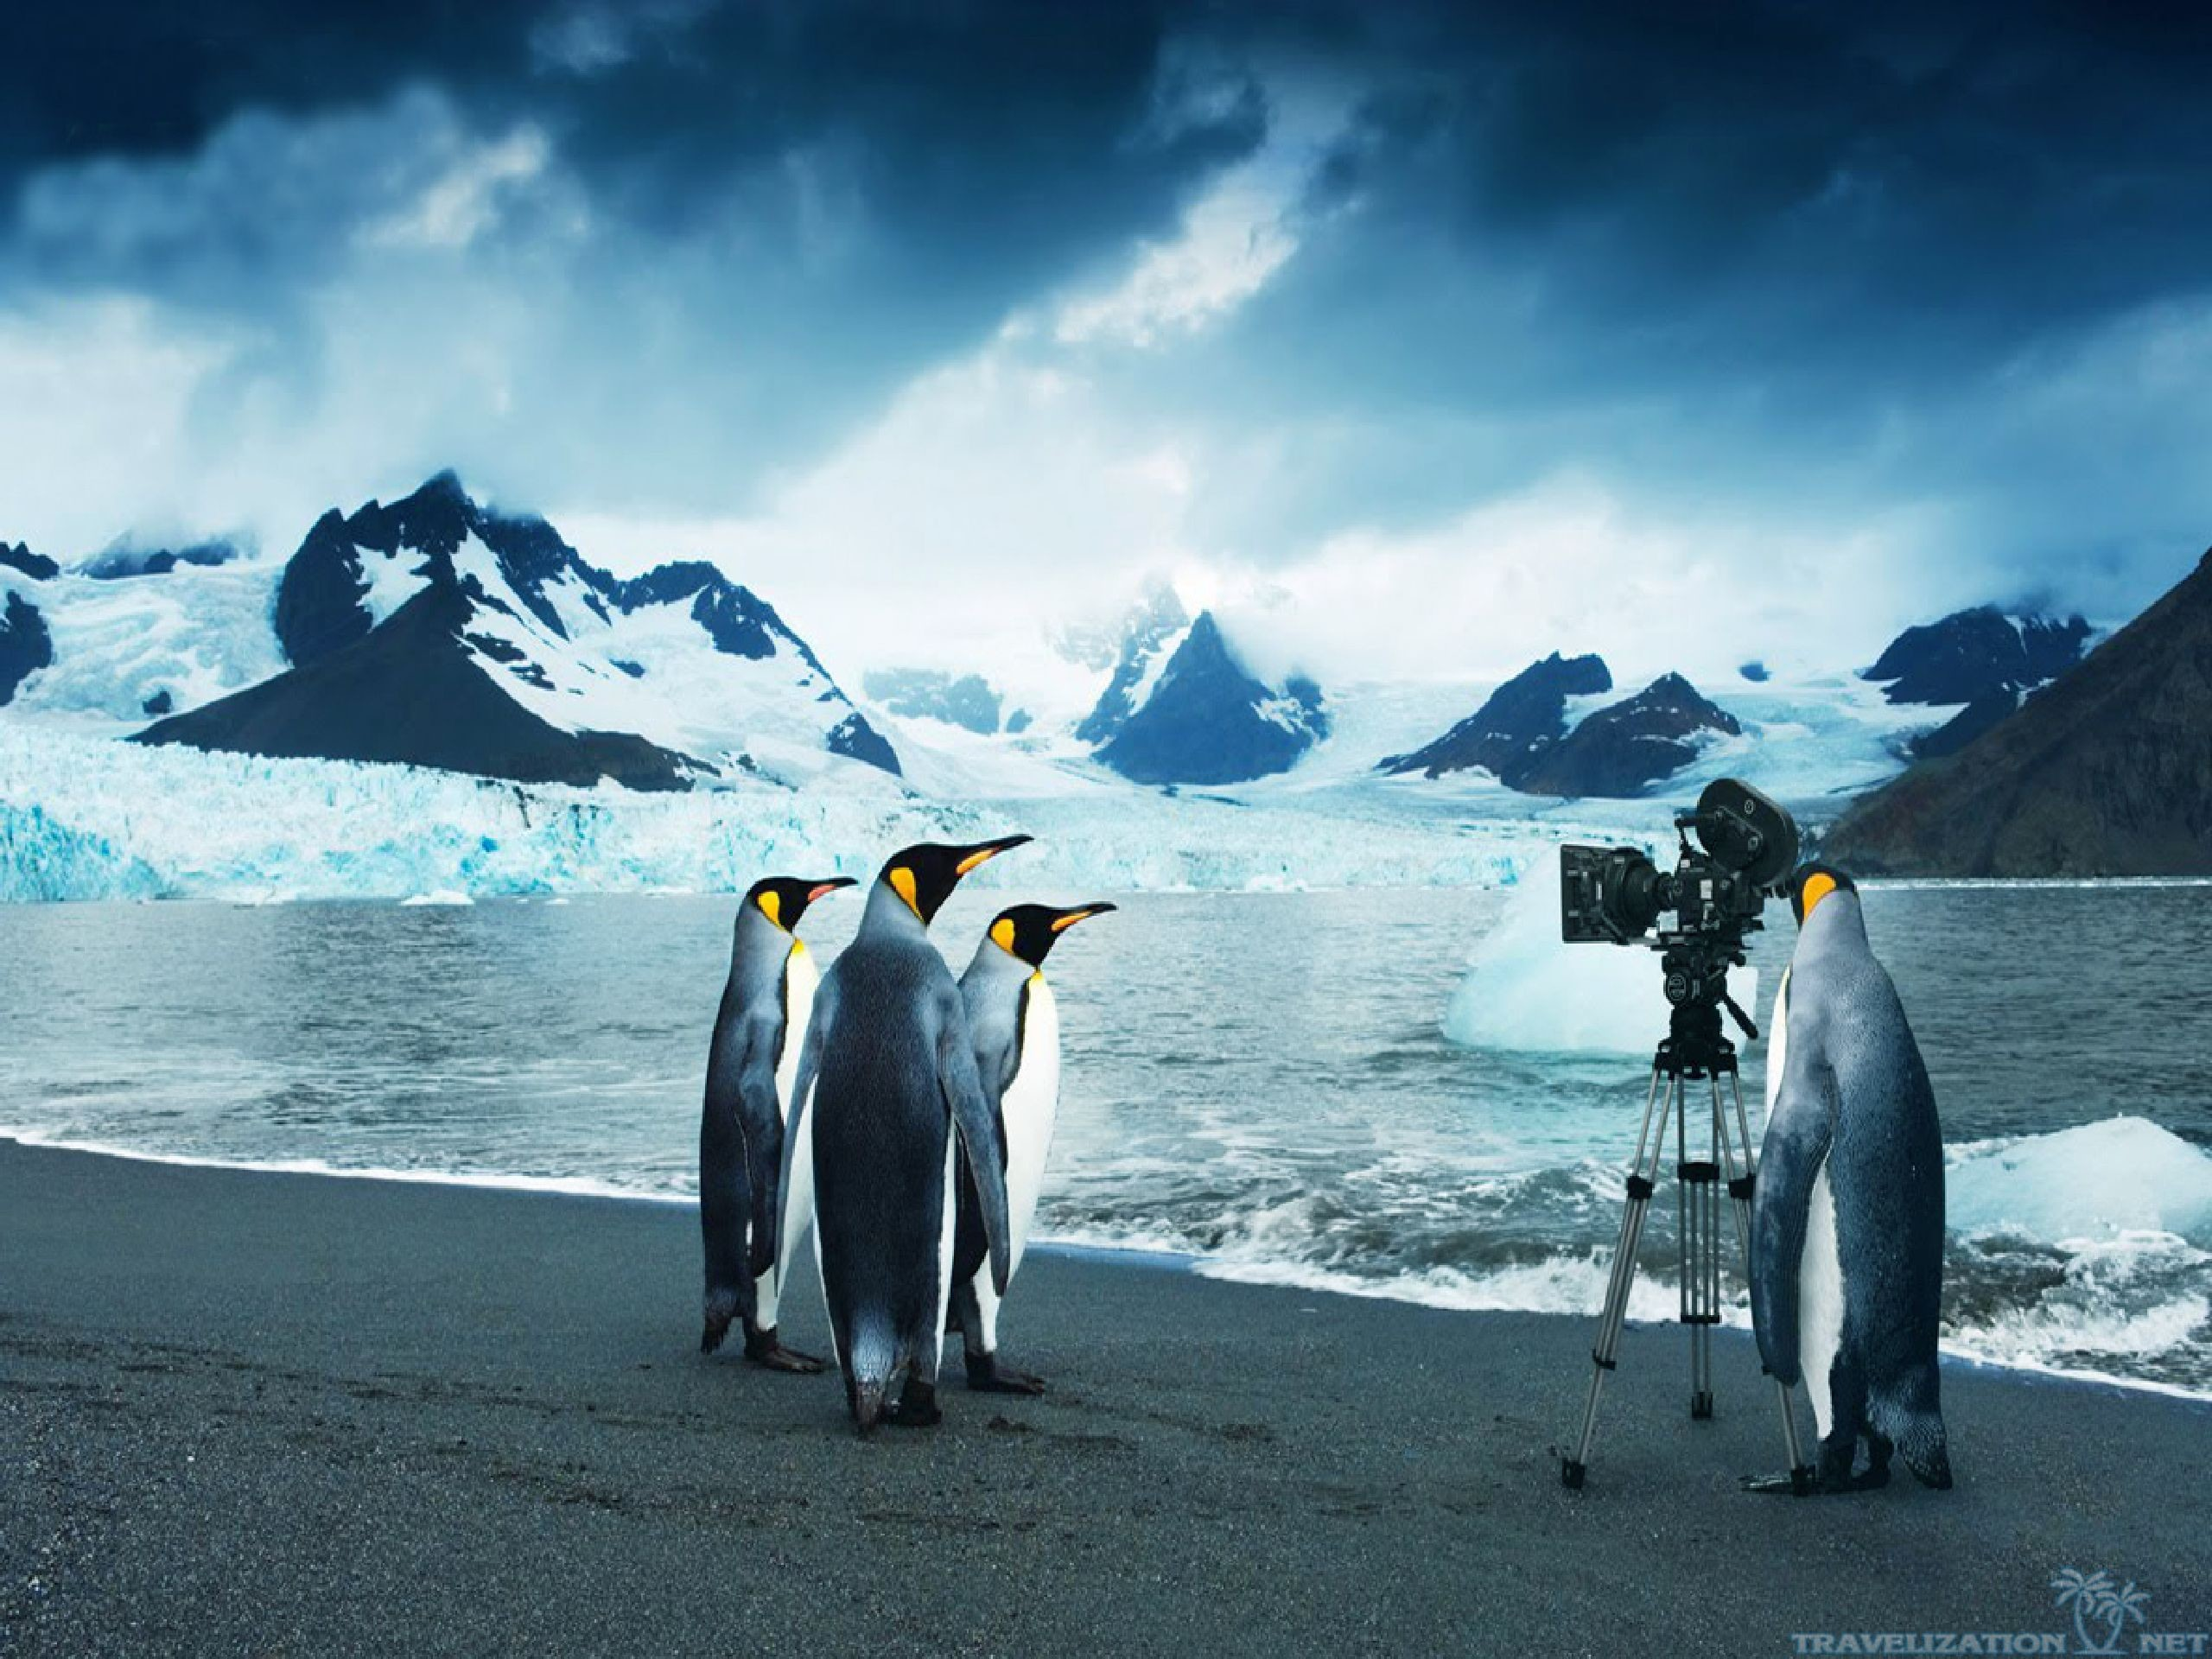 Penguin HD Wallpapers Backgrounds Wallpaper | HD Wallpapers | Pinterest |  Wallpaper, Wallpaper backgrounds and Painting pictures